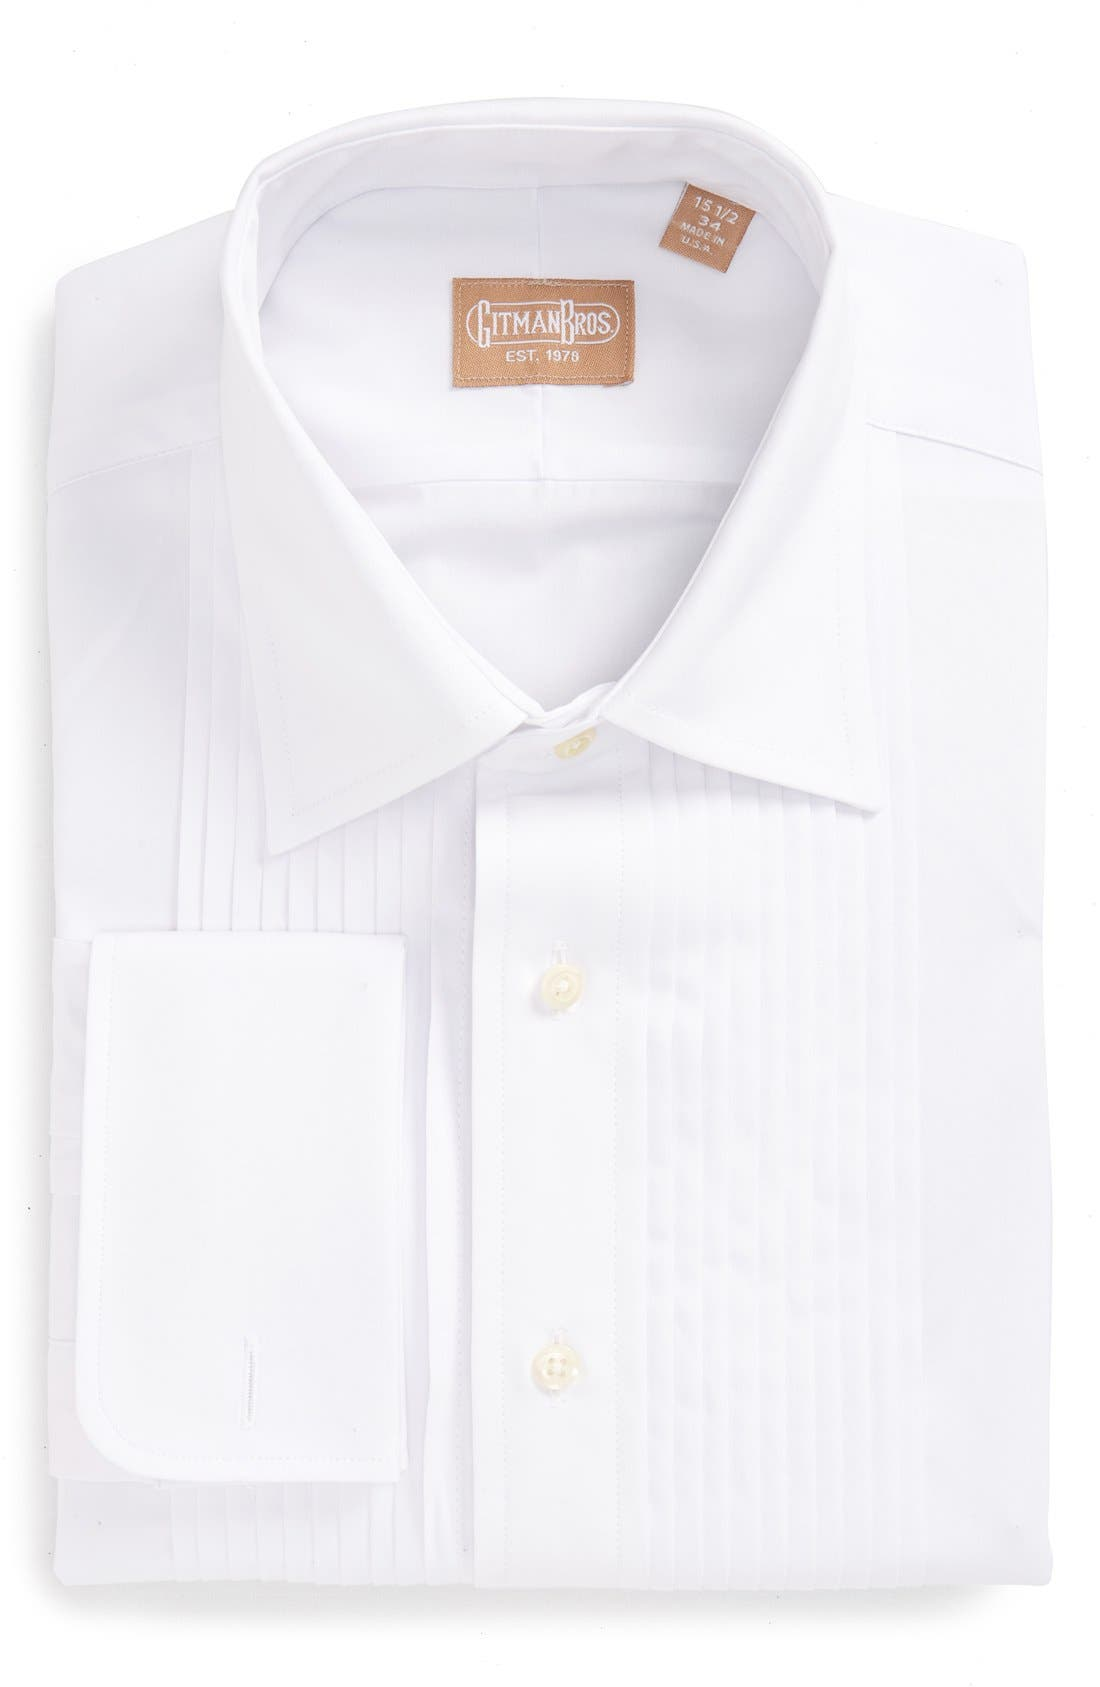 Regular Fit Pleated Dress Shirt,                             Alternate thumbnail 3, color,                             WHITE